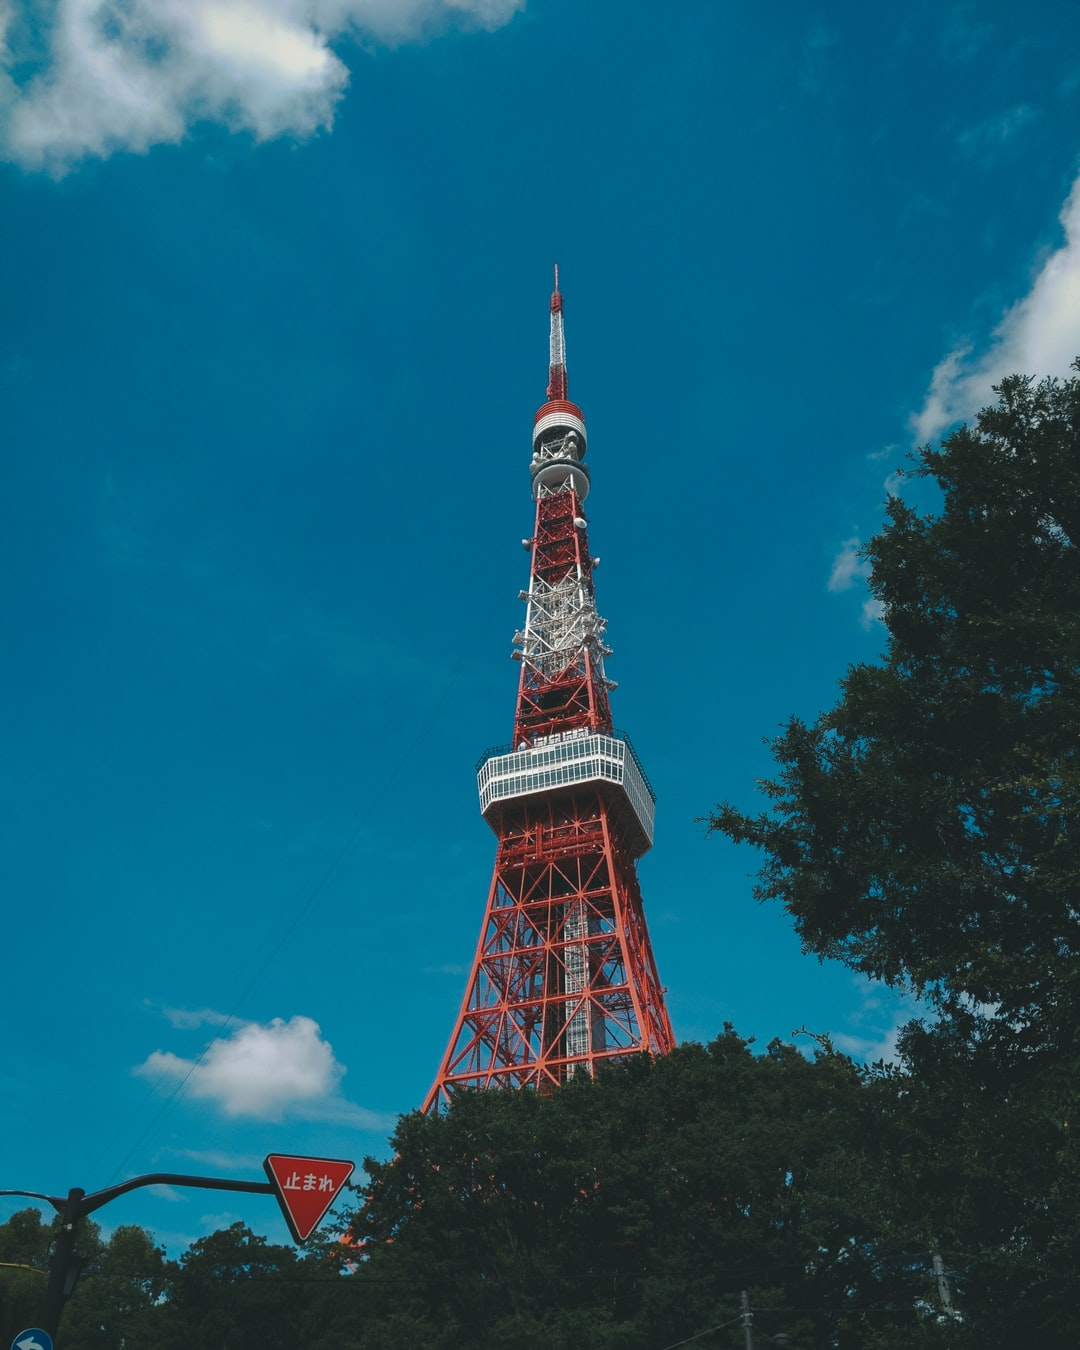 photo of the famous tokyo tower in japan